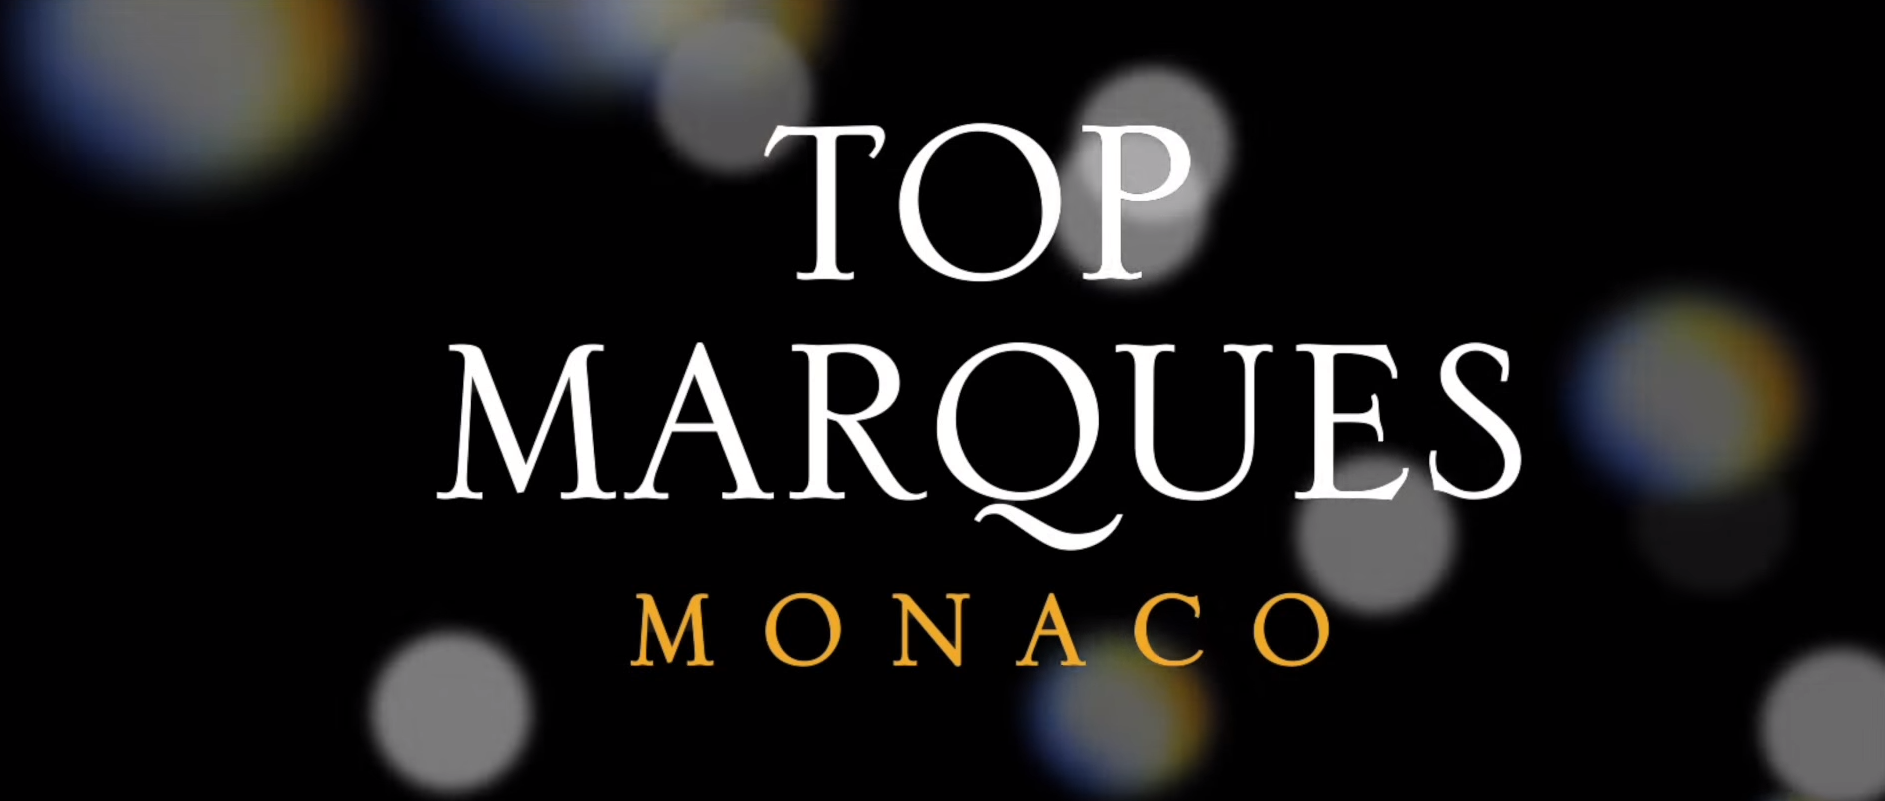 scc500 goes to top marques monaco scc500. Black Bedroom Furniture Sets. Home Design Ideas